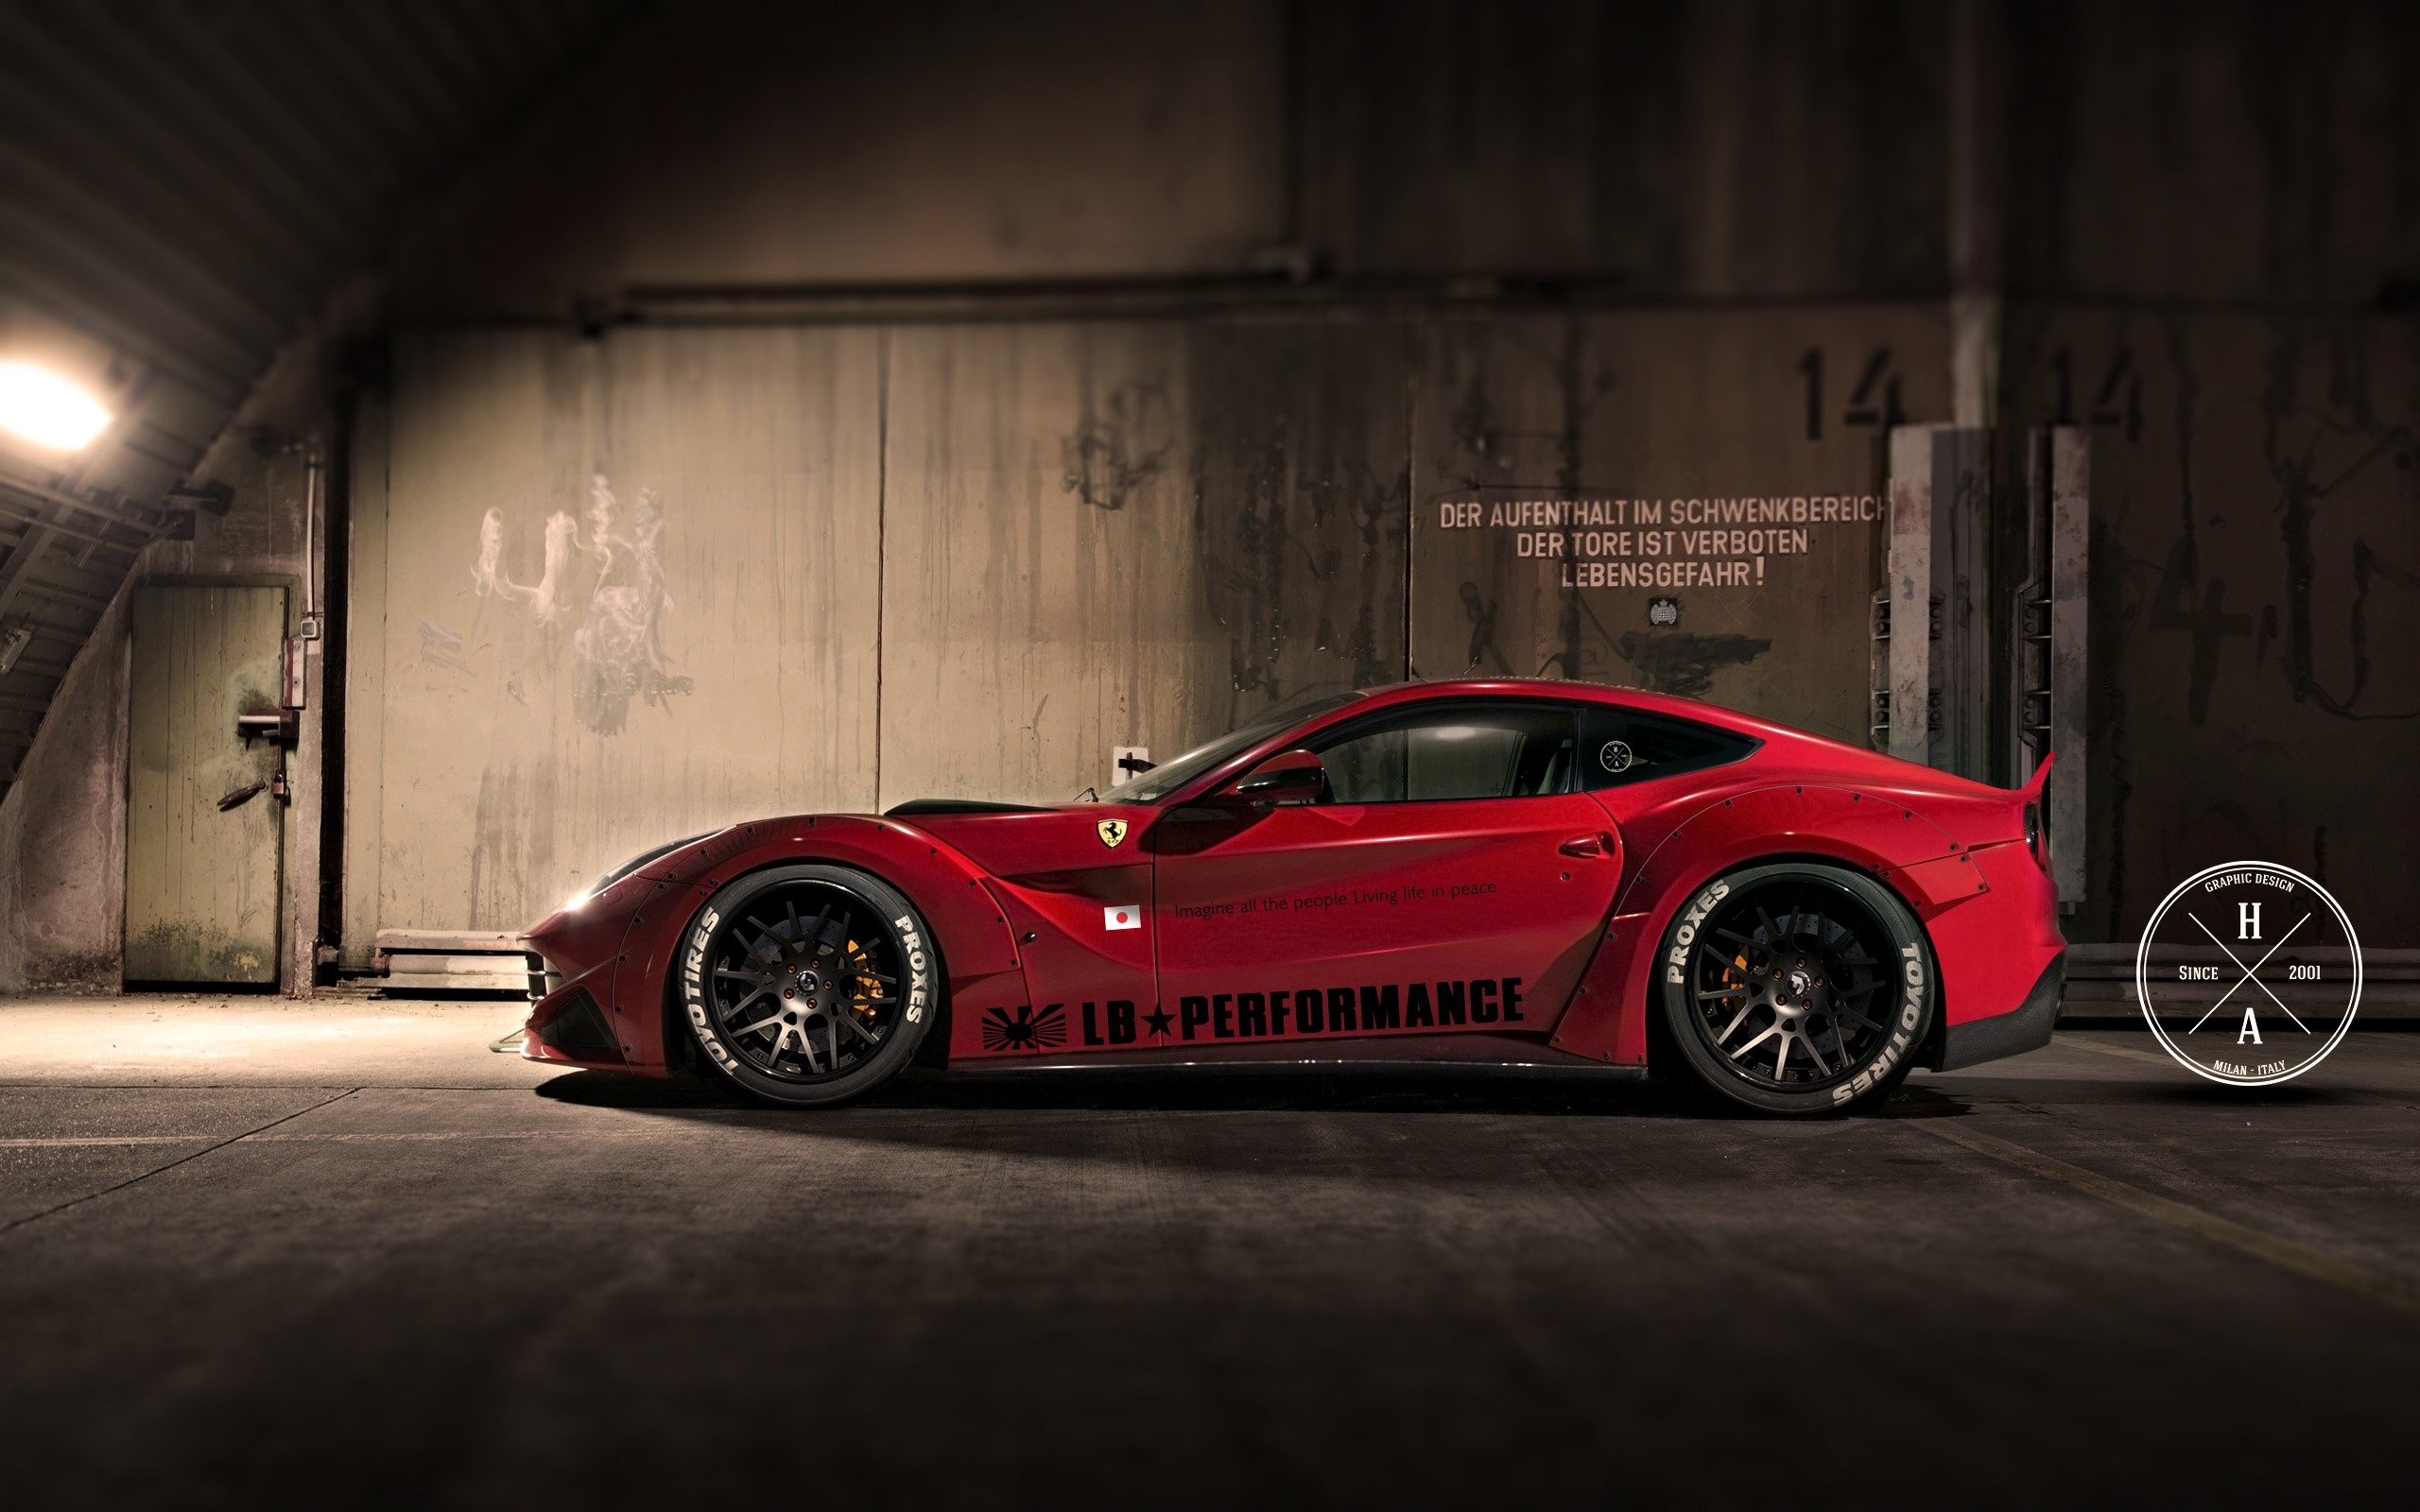 Wallpaper LB performance Ferrari 458 Italia Images